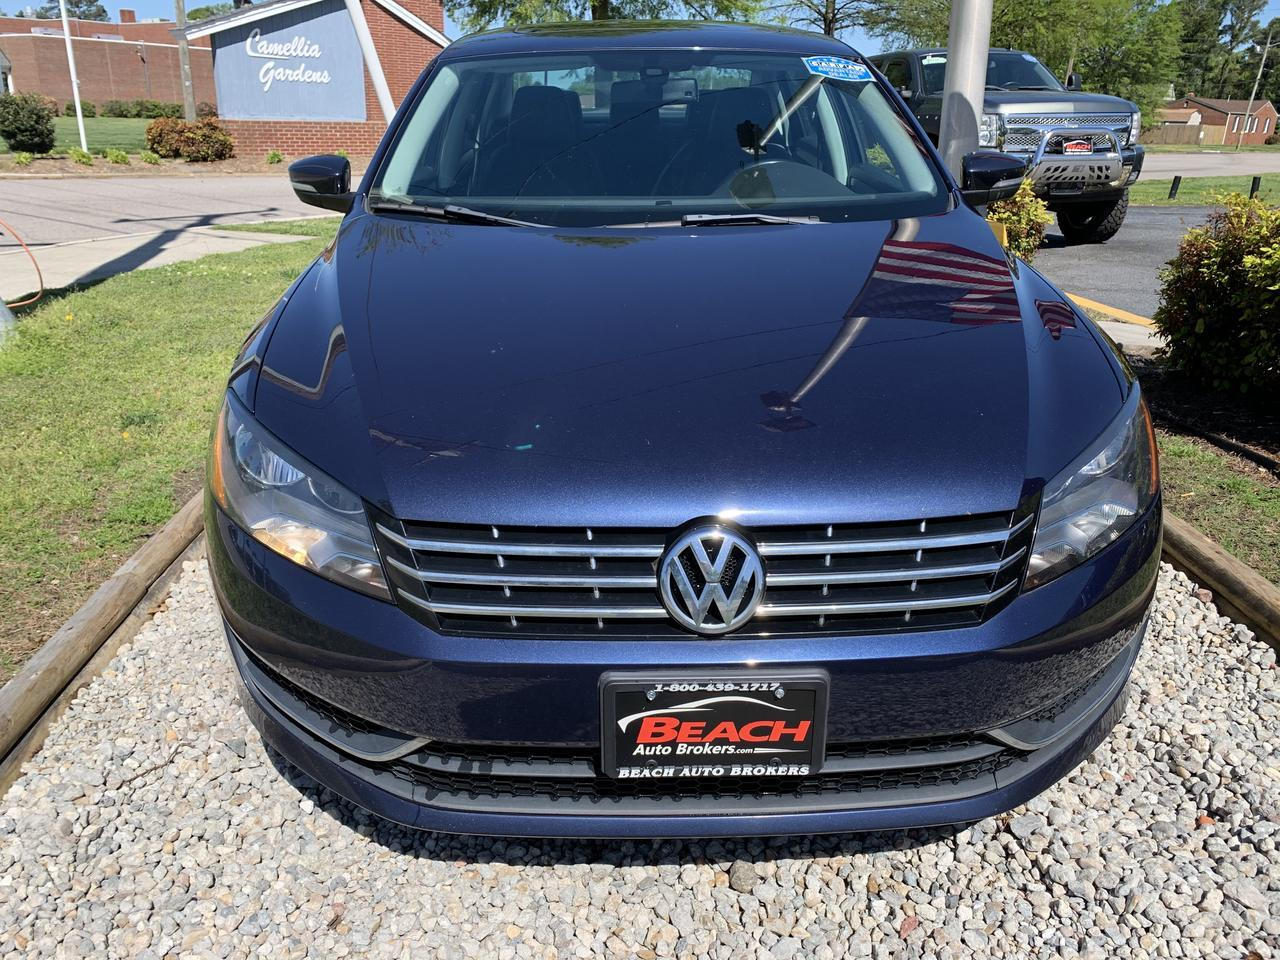 2013 VOLKSWAGEN PASSAT TDI SE, WARRANTY, LEATHER, SUNROOF, SATELLITE RADIO, HEATED FRONT SEATS, 1 OWNER, CLEAN CARFAX! Norfolk VA